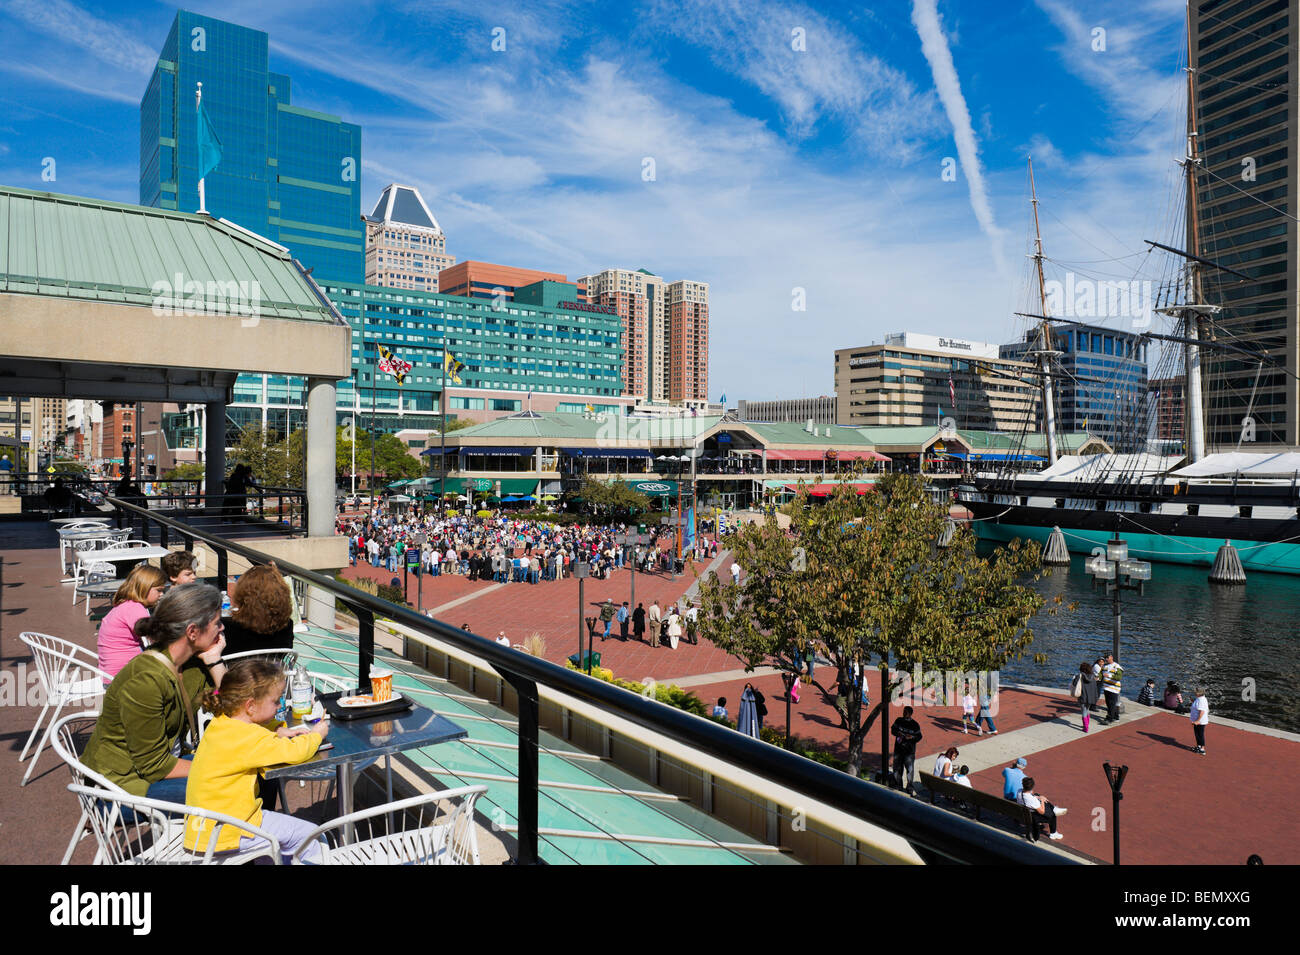 Cafe overlooking Harborplace, Inner Harbor, Baltimore, Maryland, USA - Stock Image